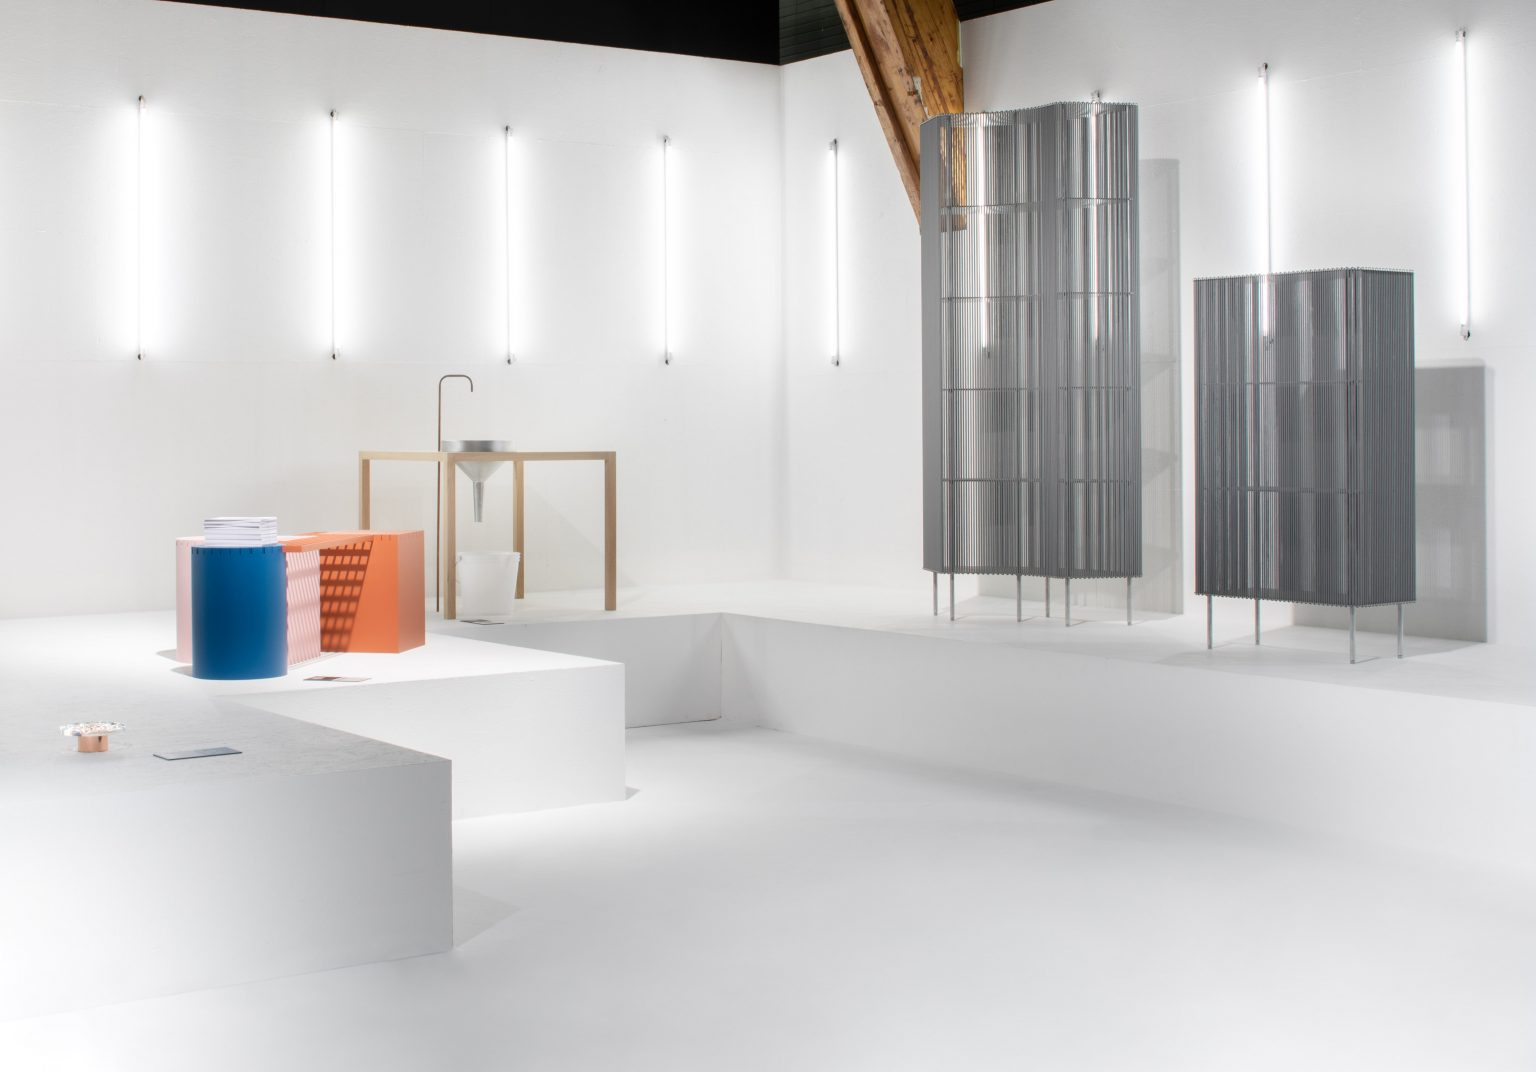 Biennale Interieur - Belgium's leading design and interior event - INTERIEUR AWARDS 2018 exhibition